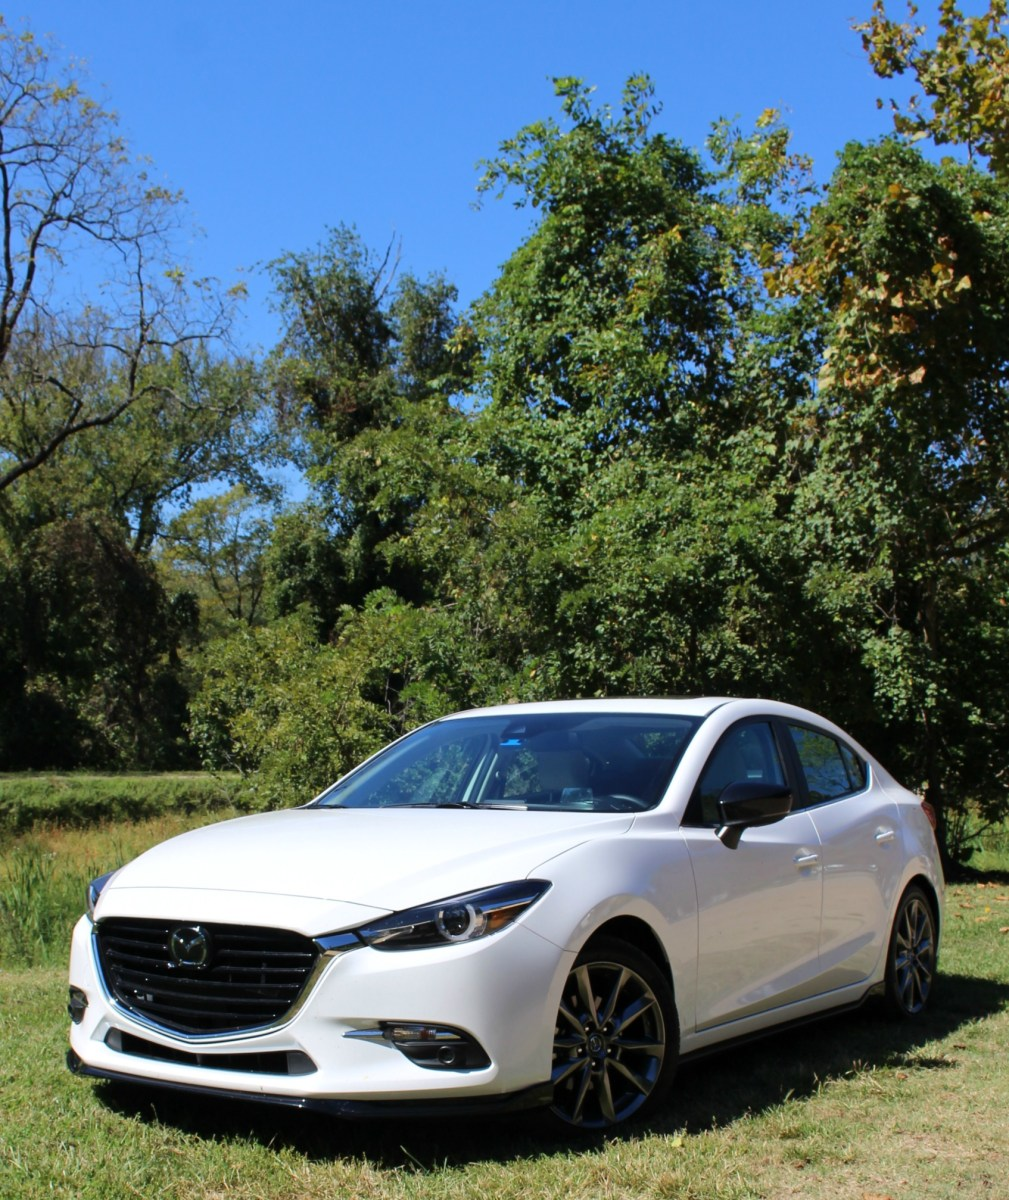 Road Trip Diaries- Washington D.C. in the 2018 Mazda3 Grand Touring